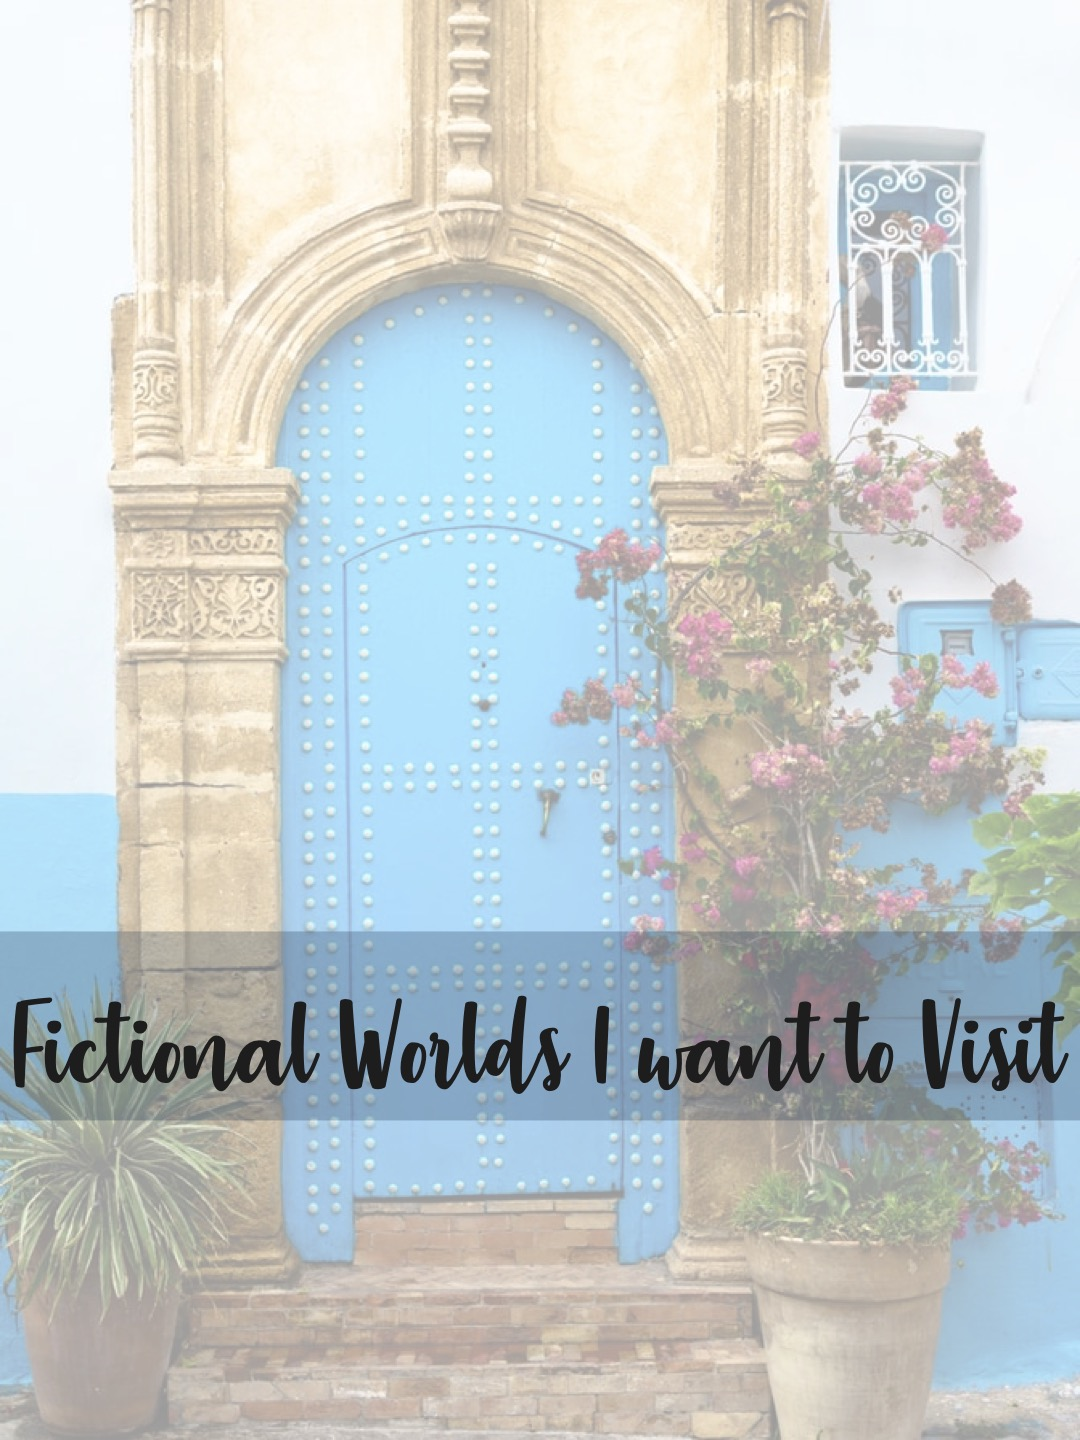 My bucket list of fictional worlds I want to visit